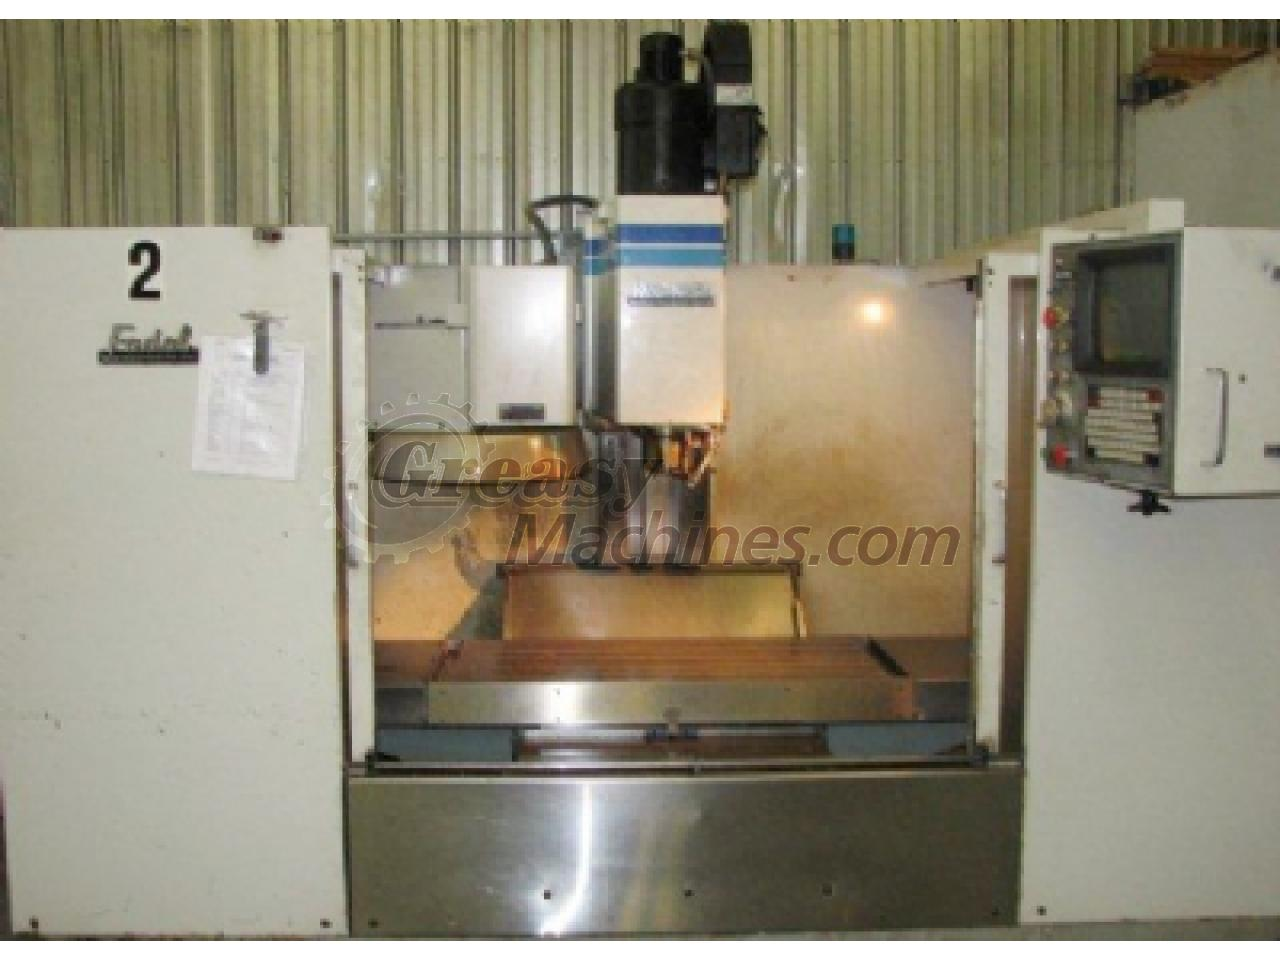 Fadal 4020 VMC, model 906-1 vertical machining center, Fadal CNC 88 control.